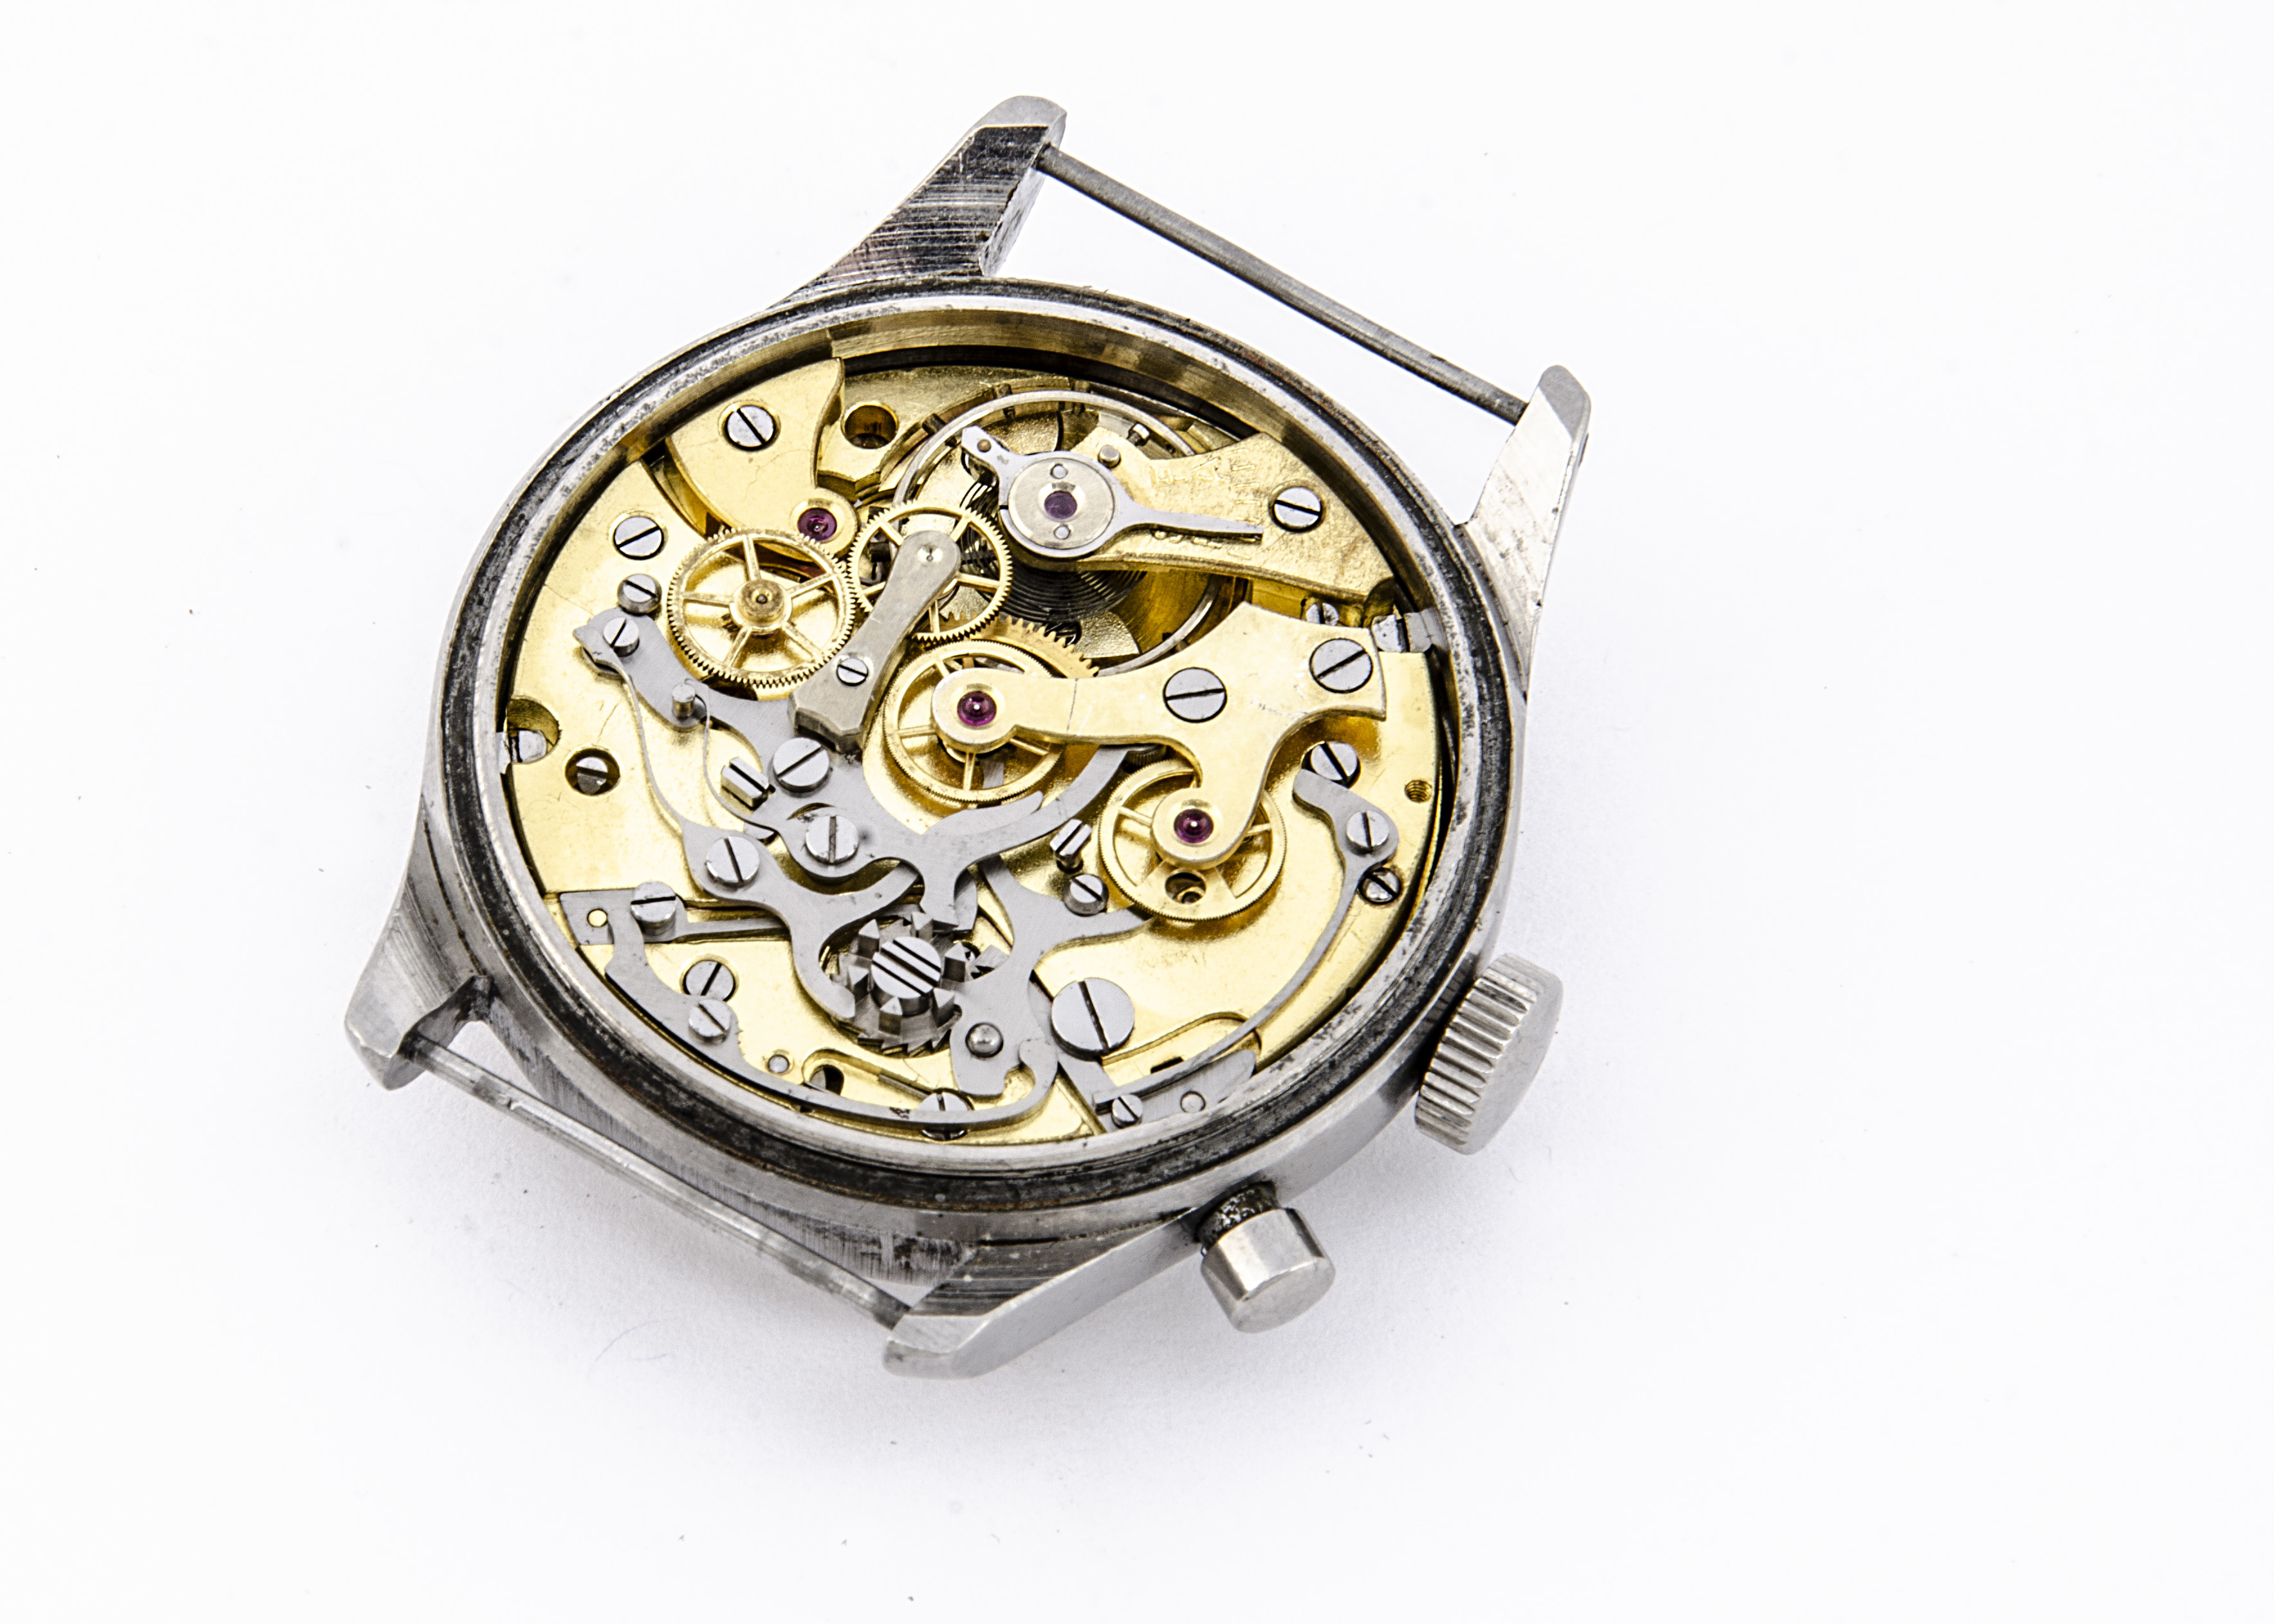 A c1950/60s Lemania Royal Navy / FAA single button chronograph stainless steel wristwatch, 37mm - Image 2 of 4